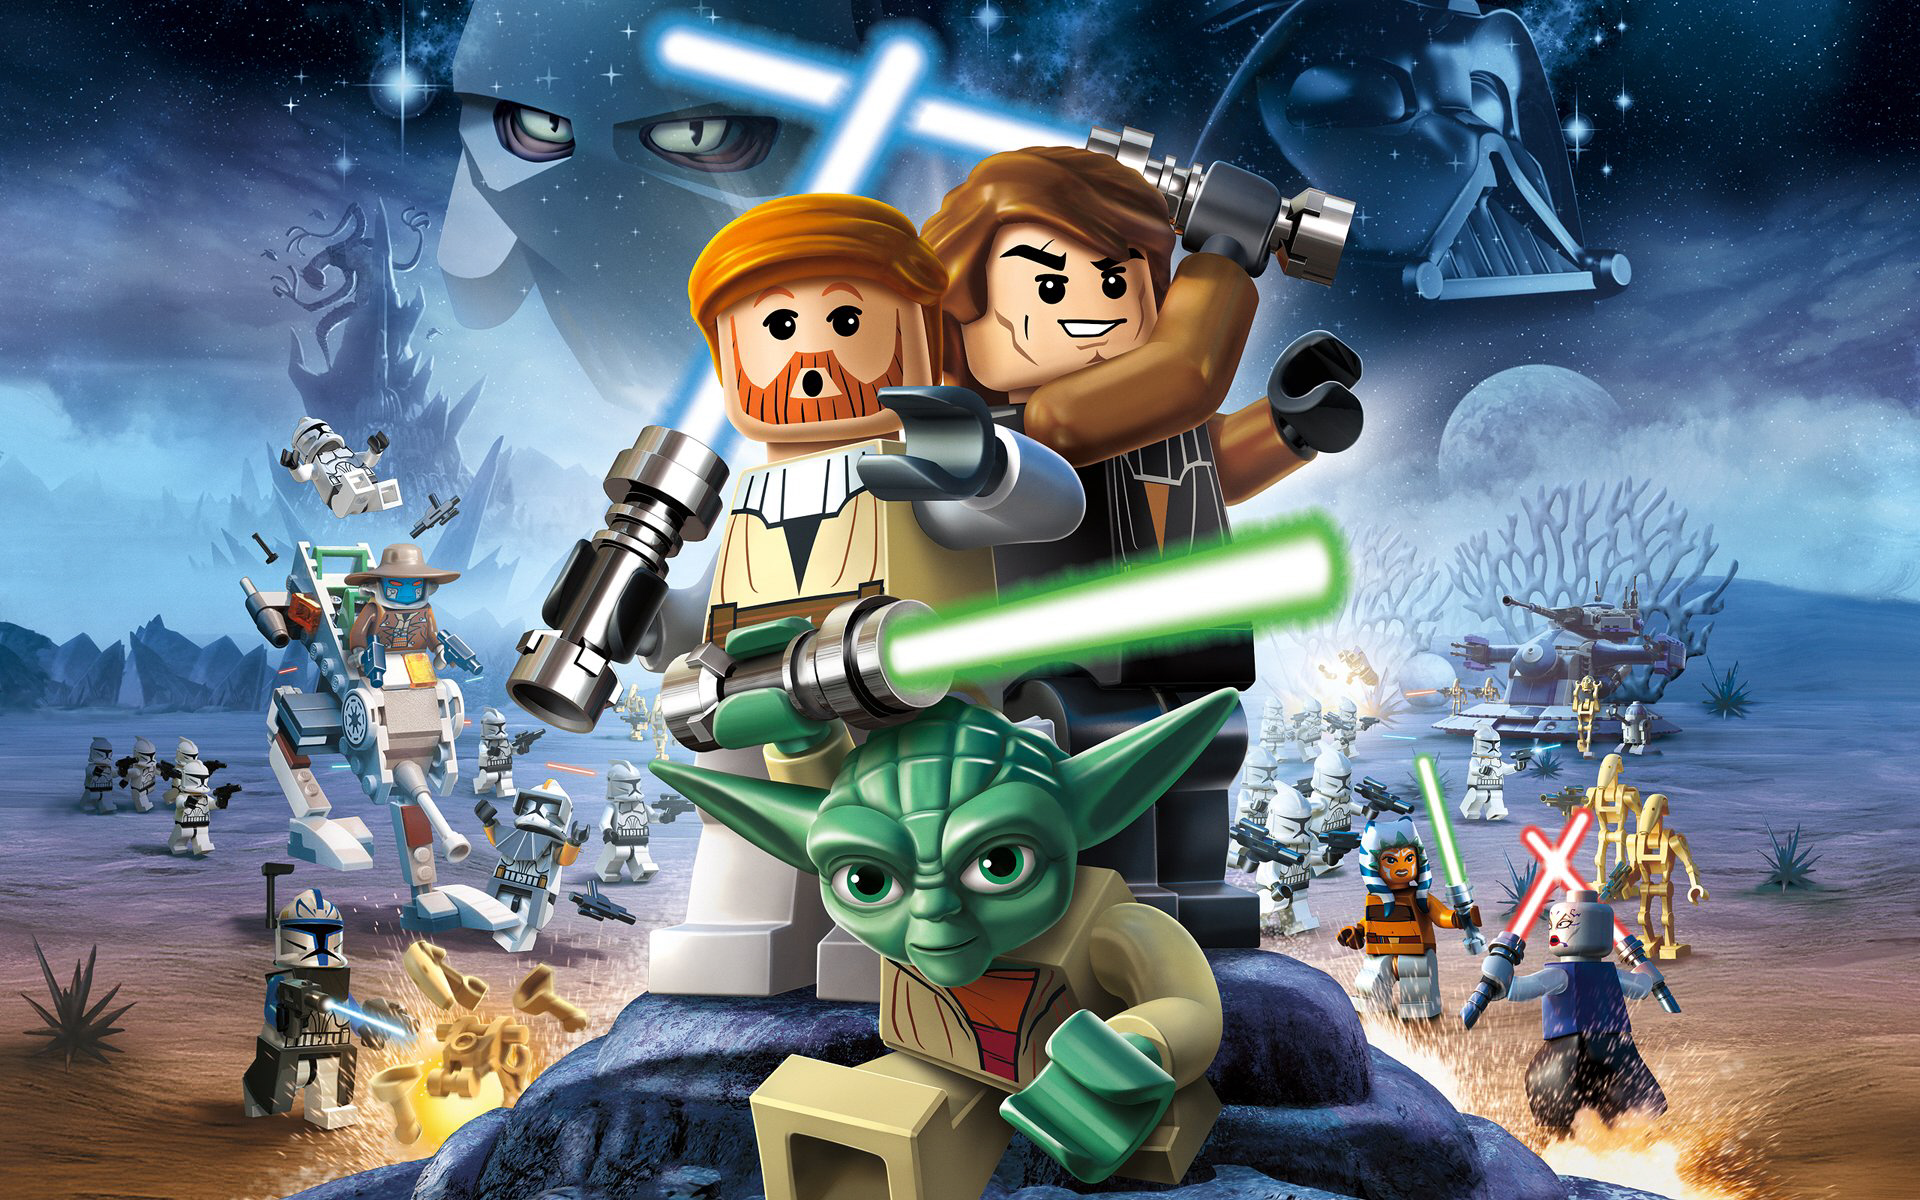 Lego Star Wars 3 Wallpaper